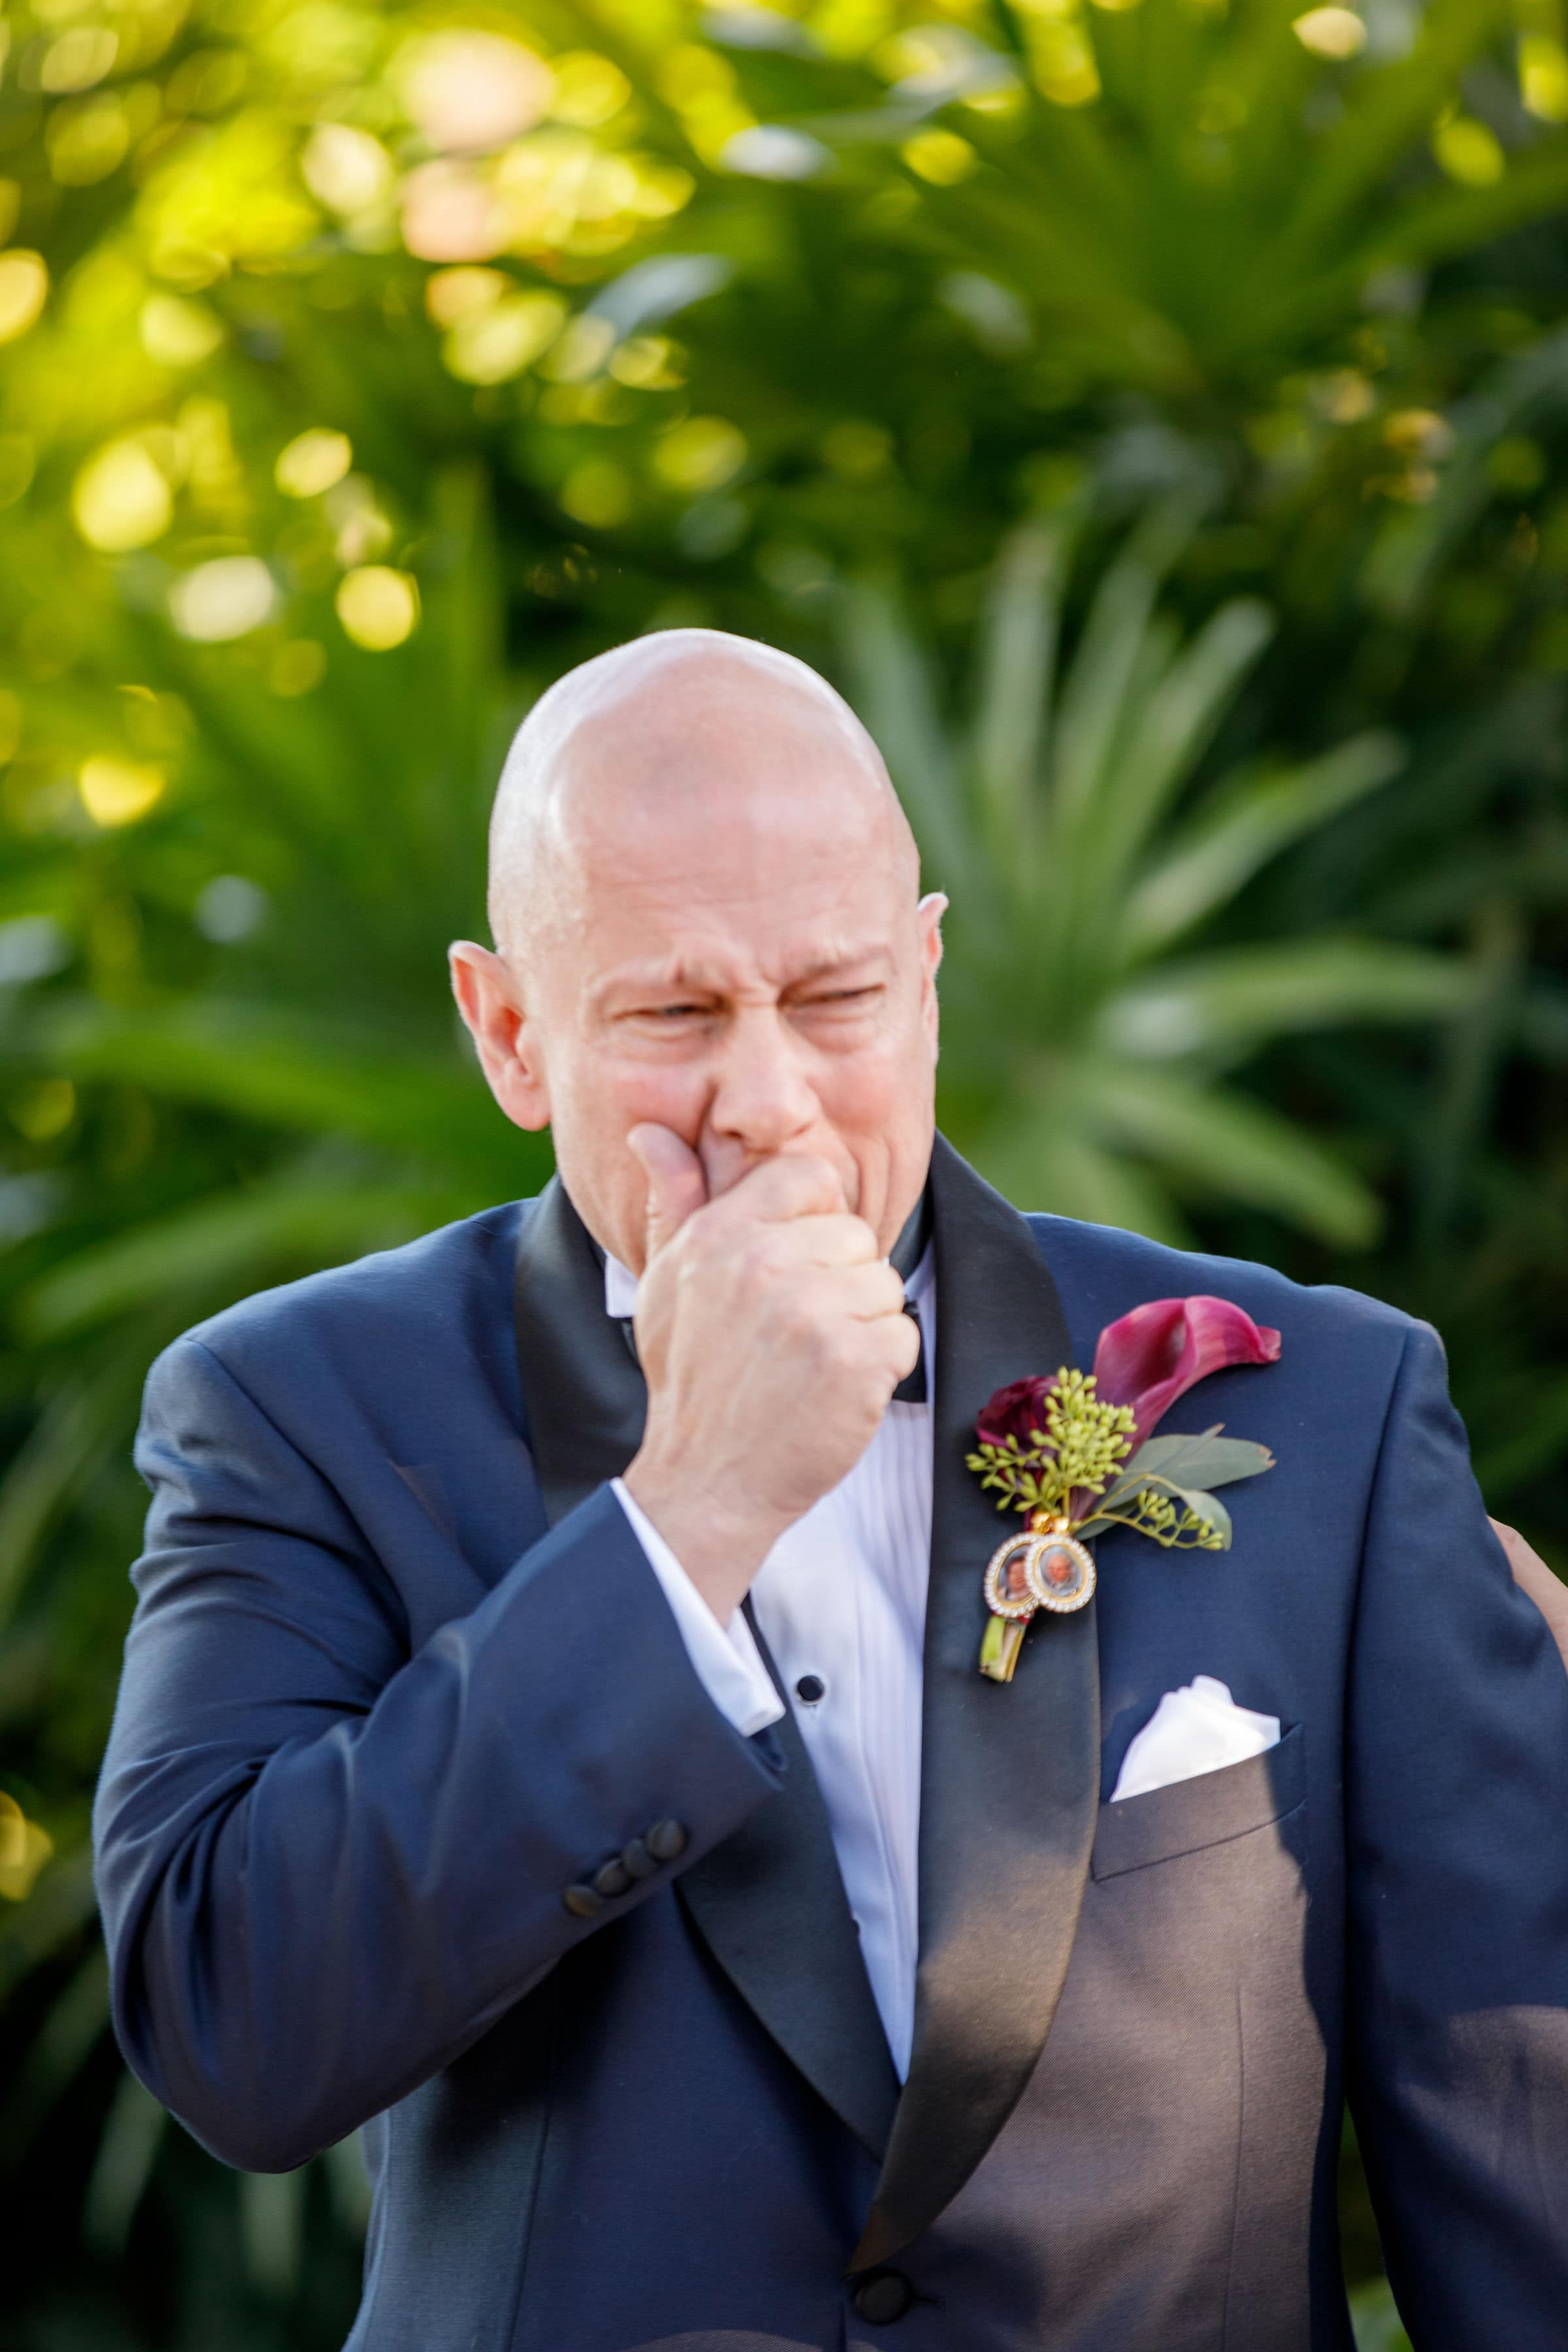 Groom getting emotional at wedding ceremony